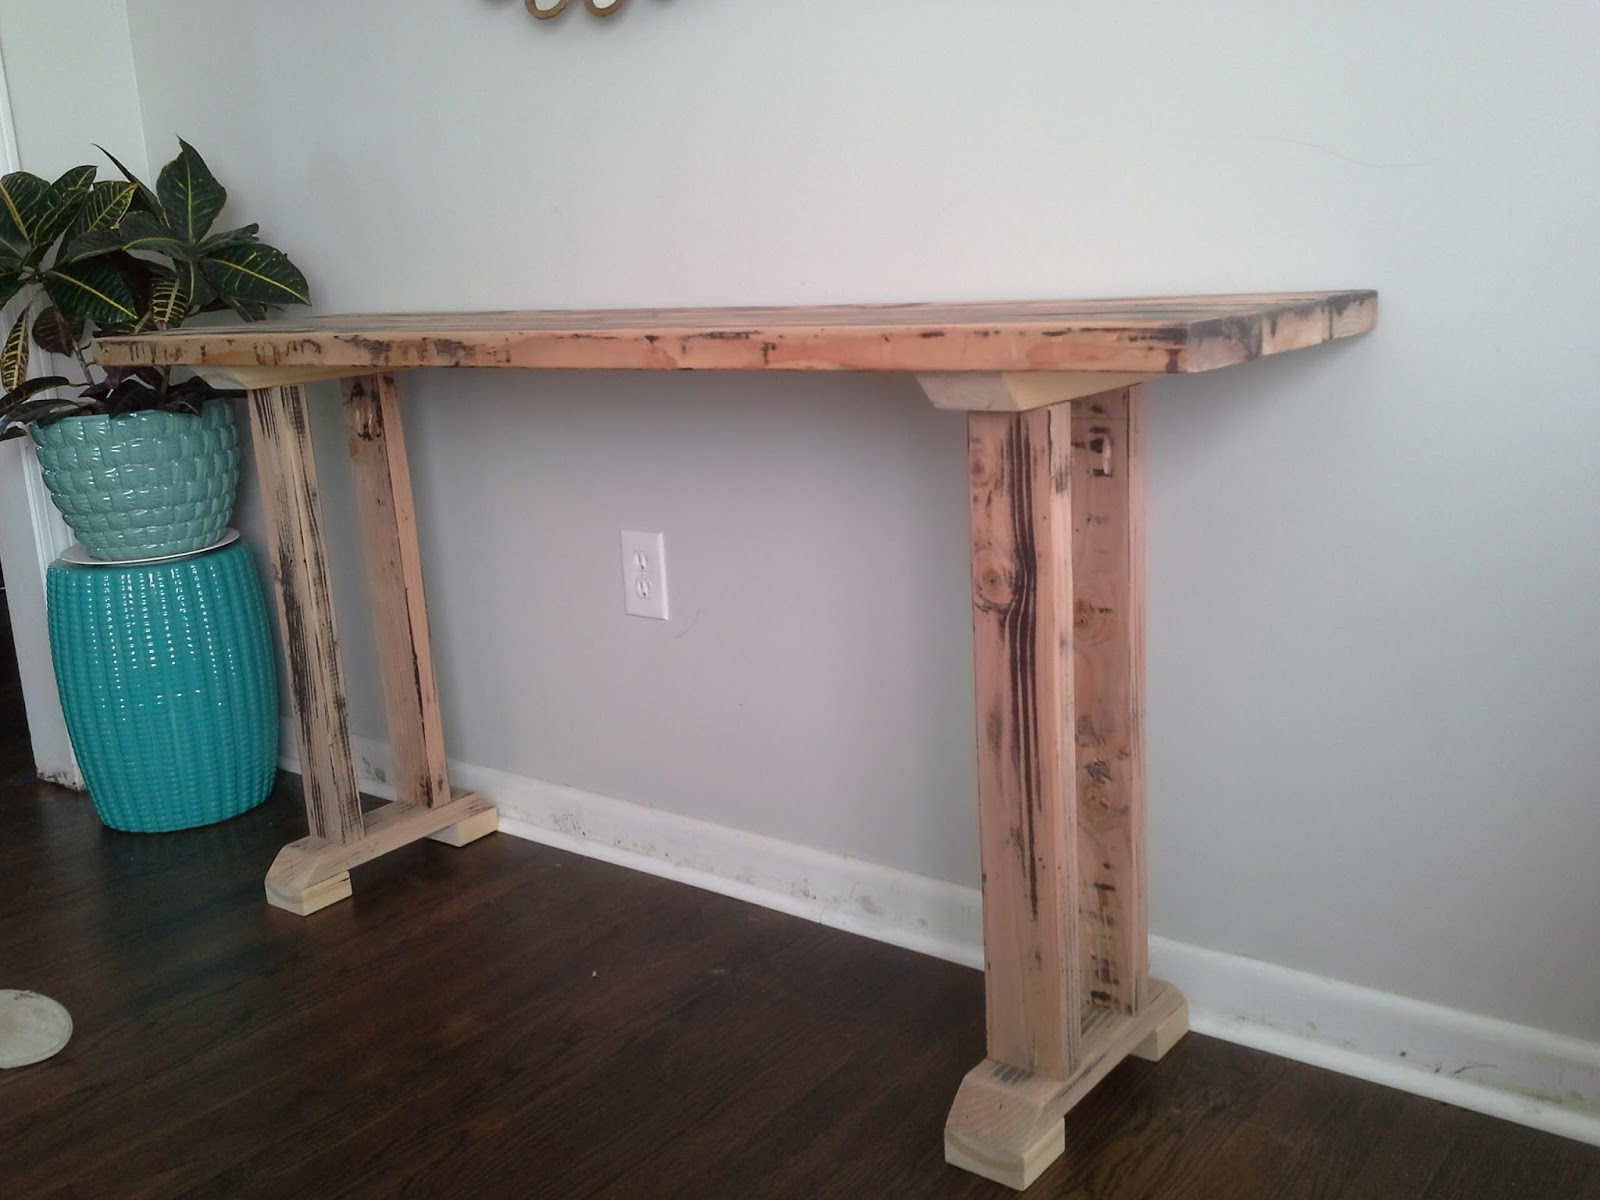 Lilly's Home Designs: DIY Build a Console Table